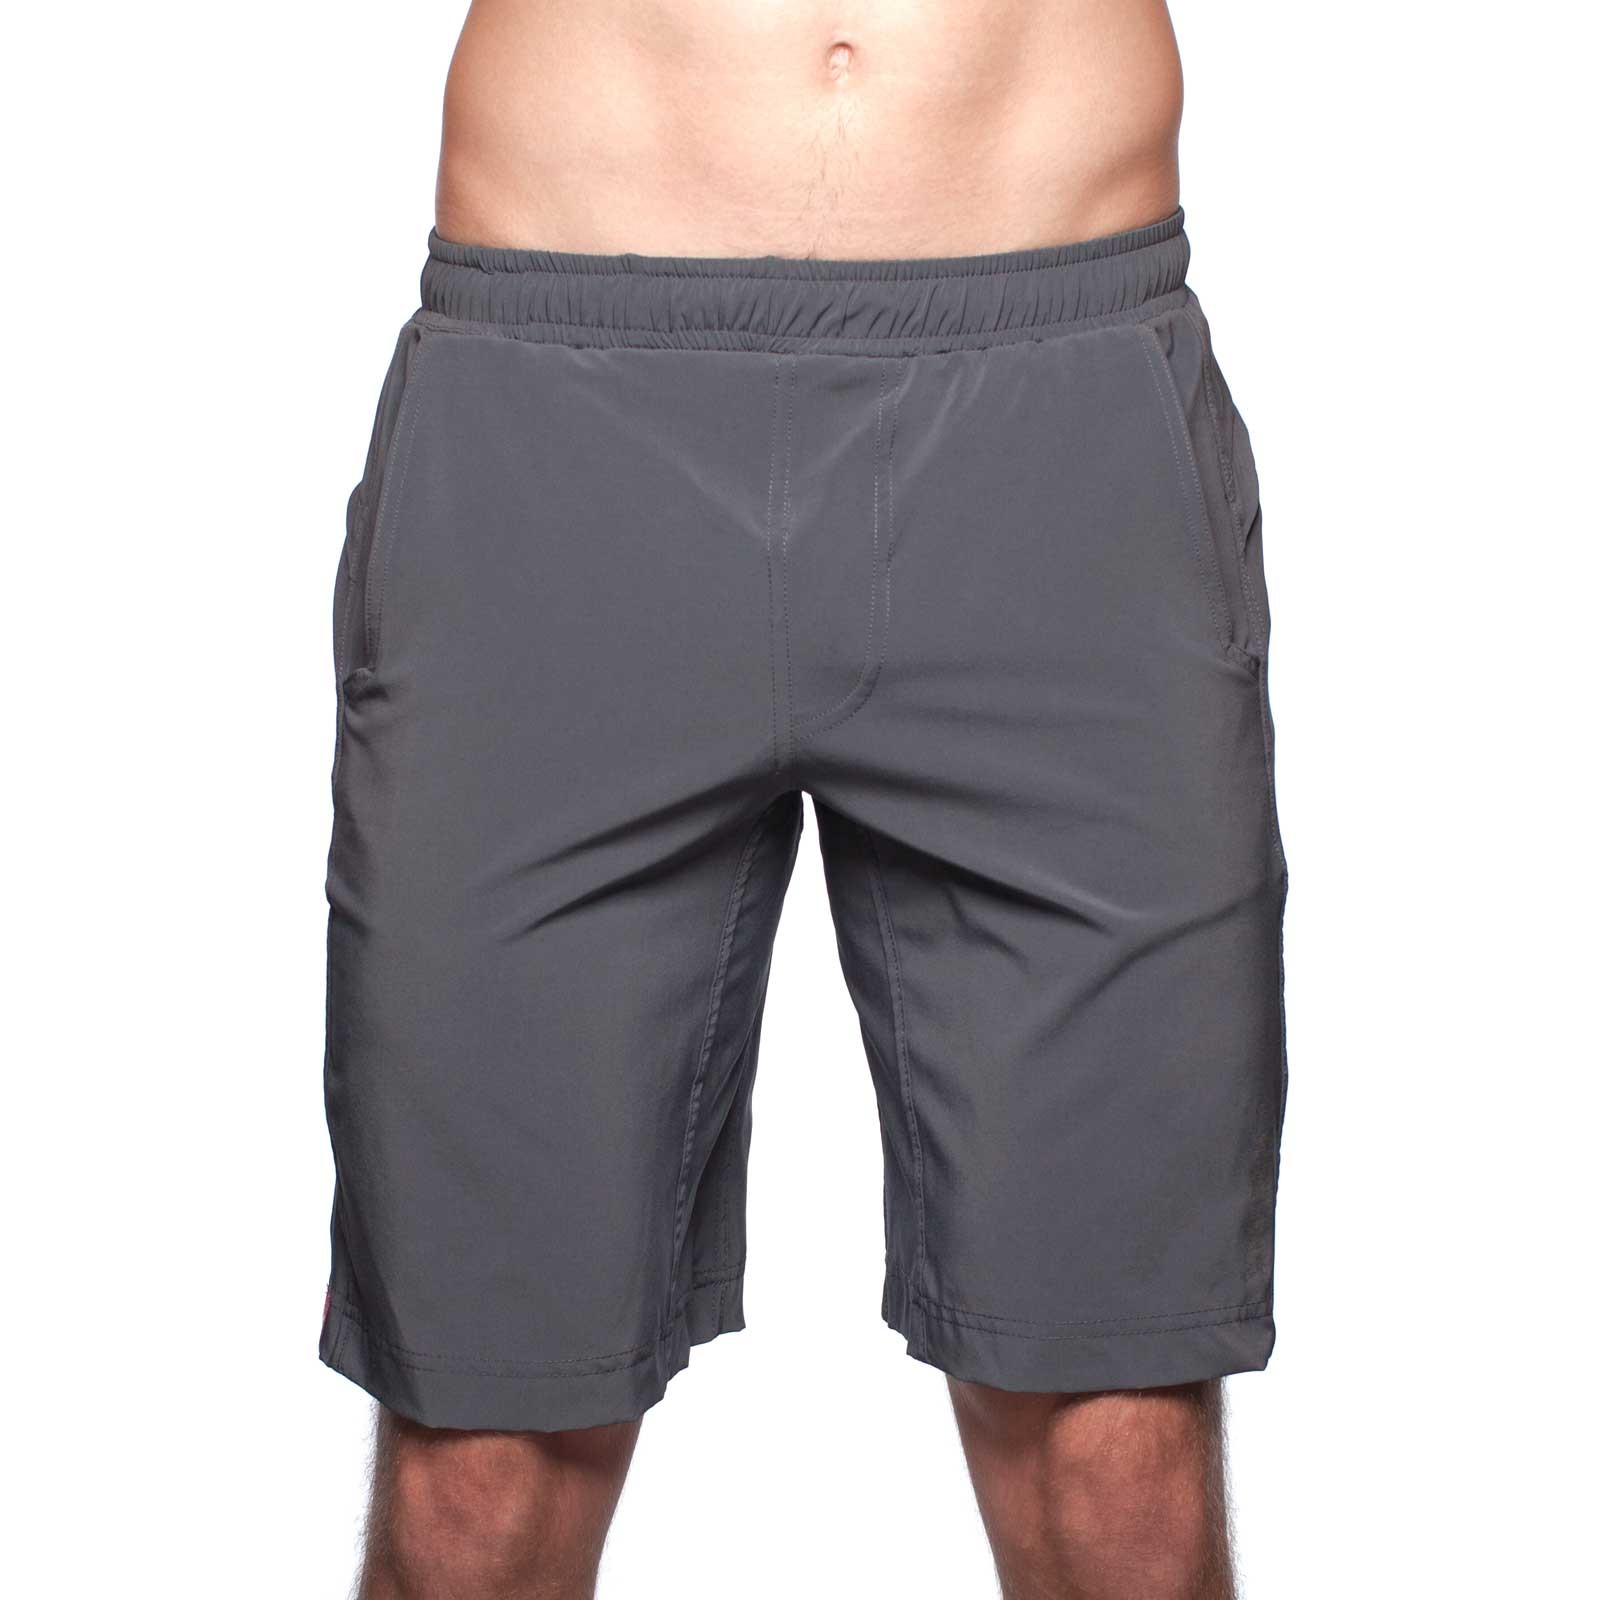 Buy Muscleville Shorts Men Charcoal from Progenex | Exclusive online